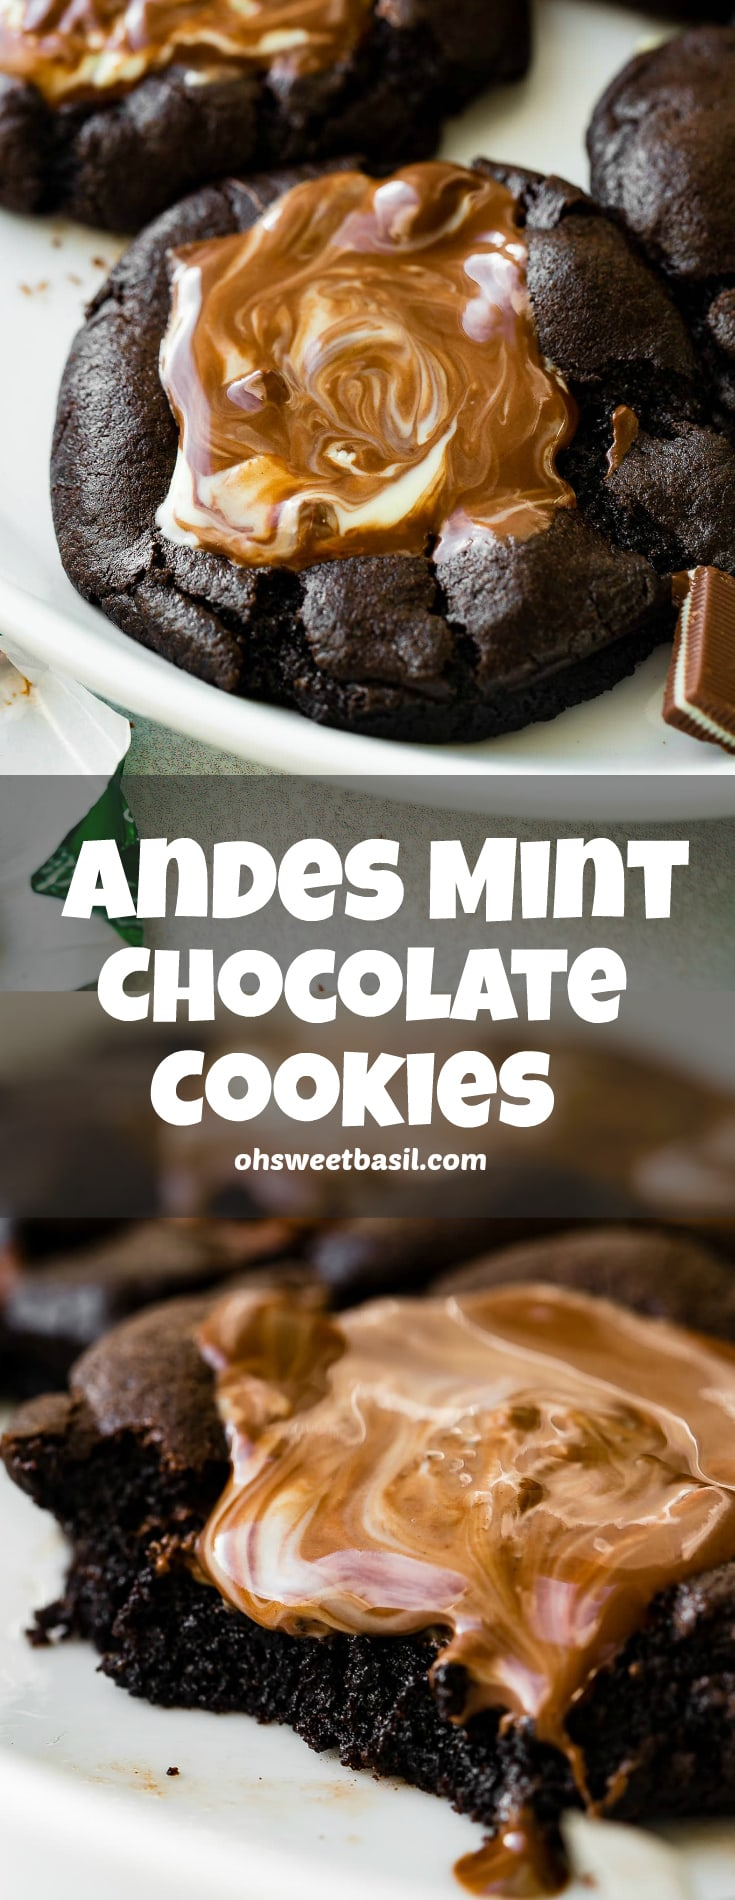 A photo of a chocolate cookie topped with melting Andes Mints.